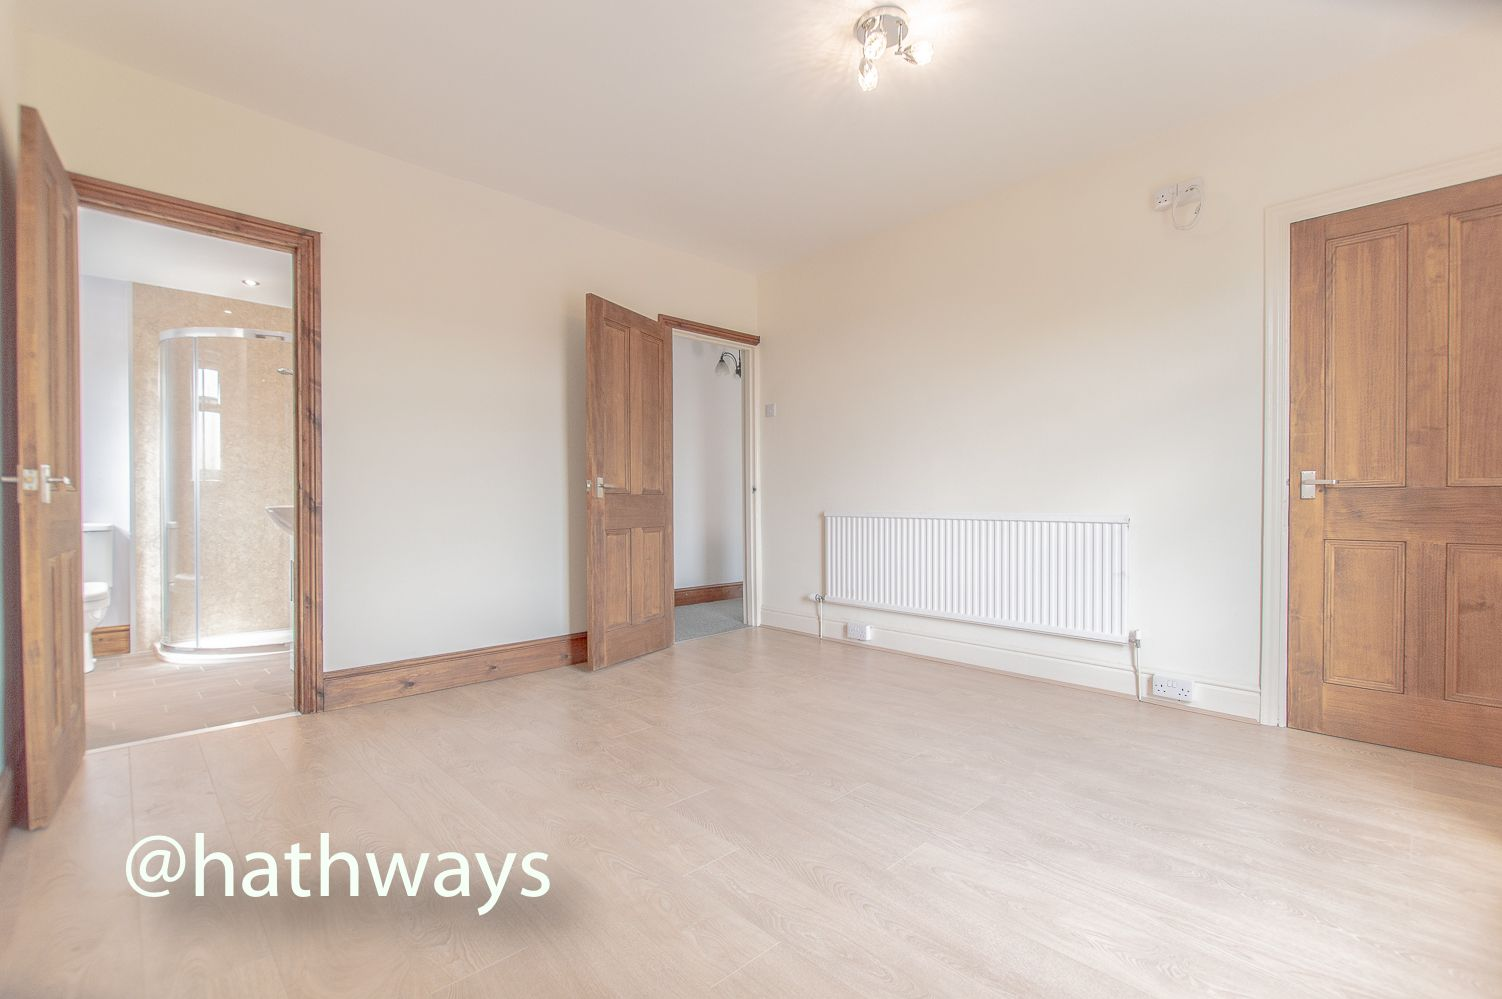 4 bed house for sale in Lower Stoney Road  - Property Image 42